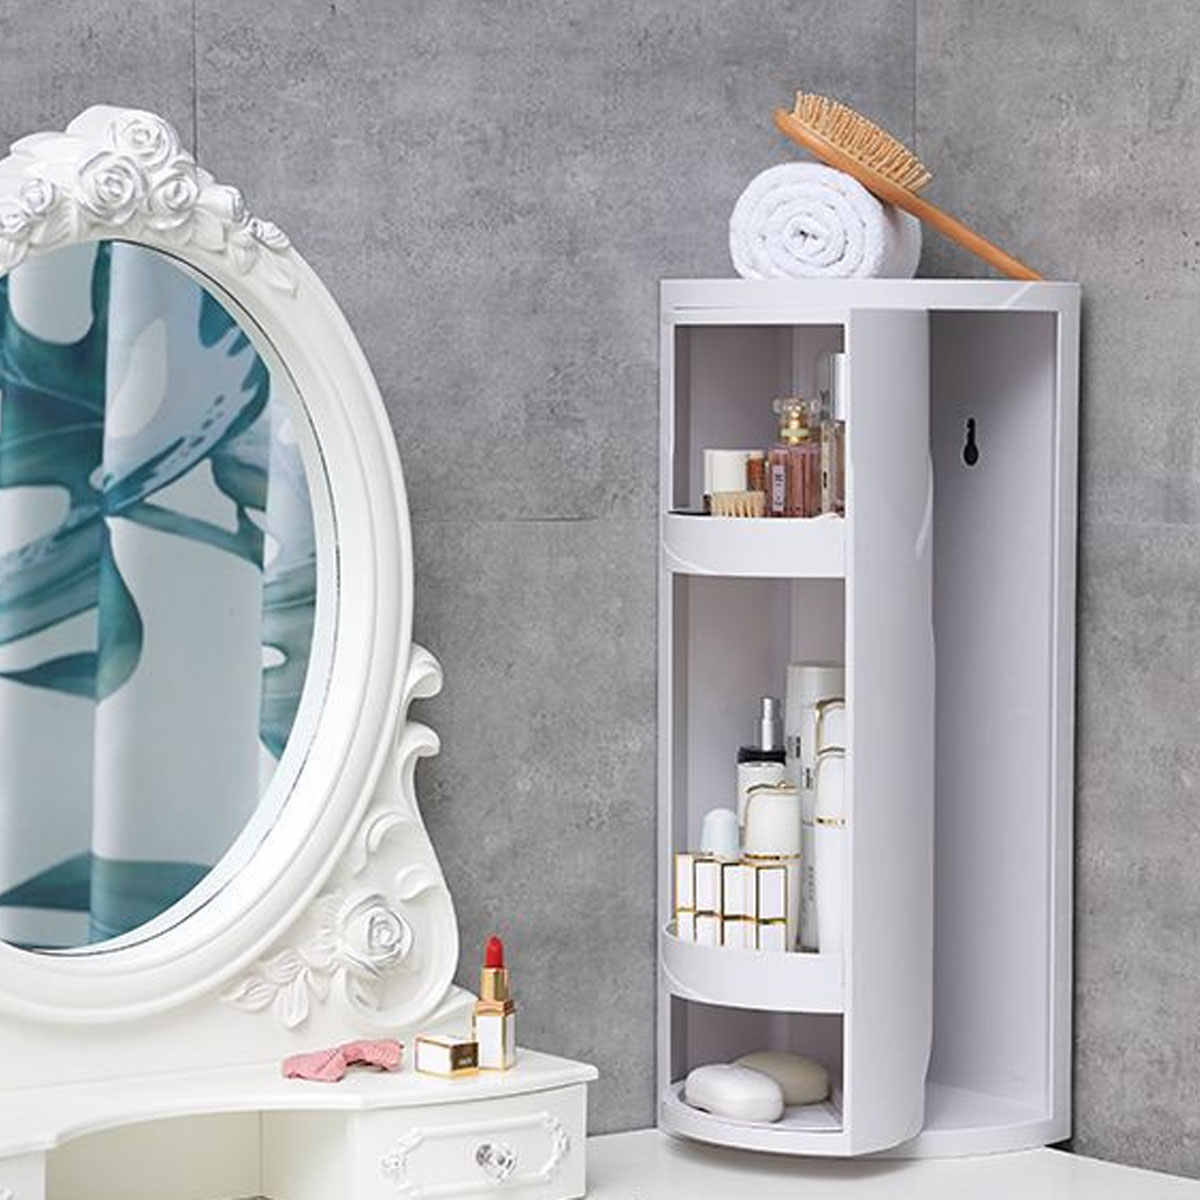 2 Colors 2 Sizes Multi Functional Toilet Storage Shelf 360 Degrees Rotating Bathroom Corner Storage Rack Cabinet Aliexpress